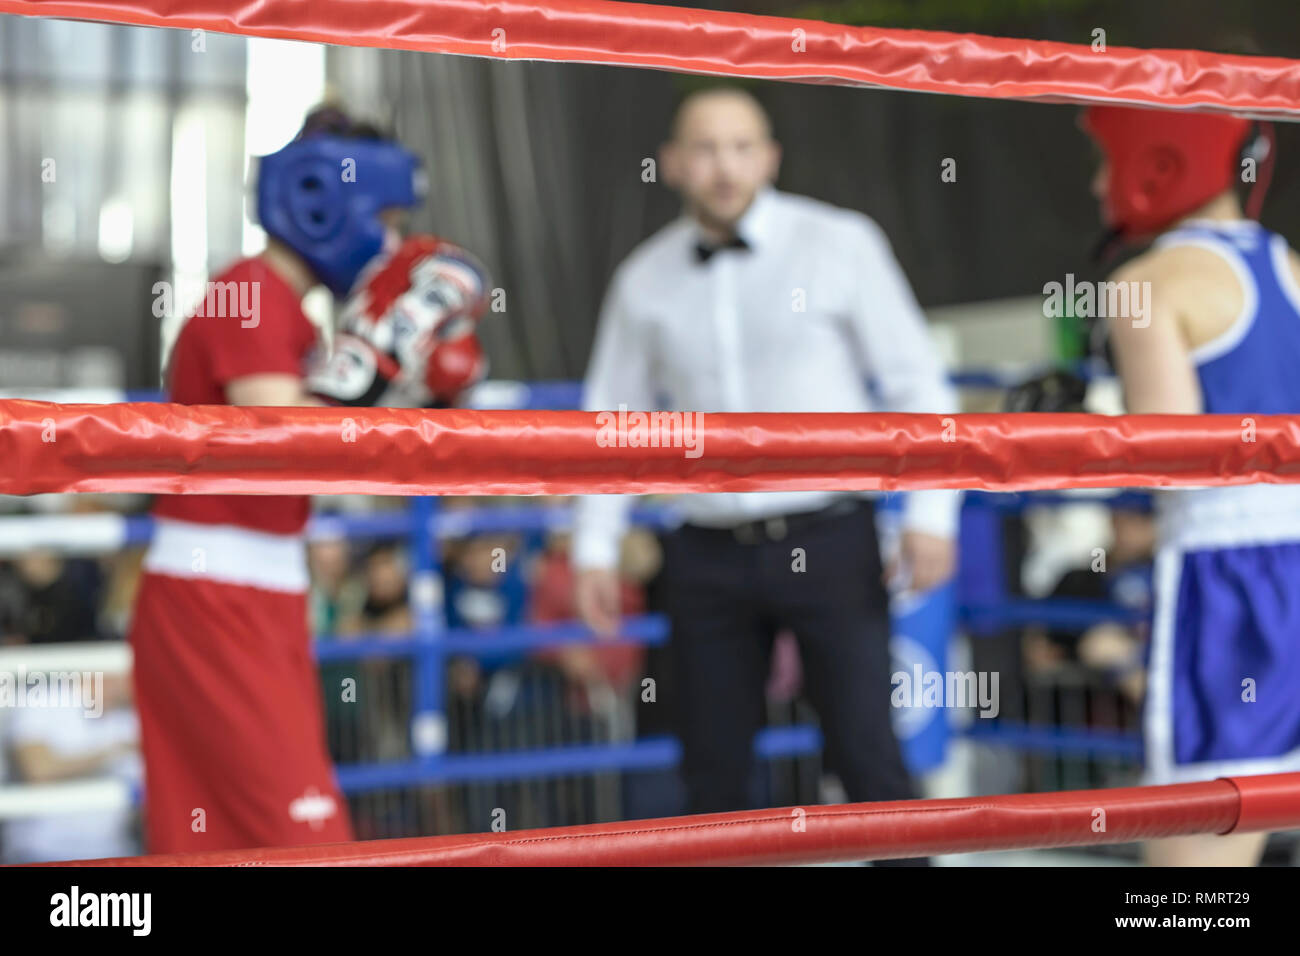 Blurred image young athletes boxers and sports referee in a ring boxing game - Stock Image